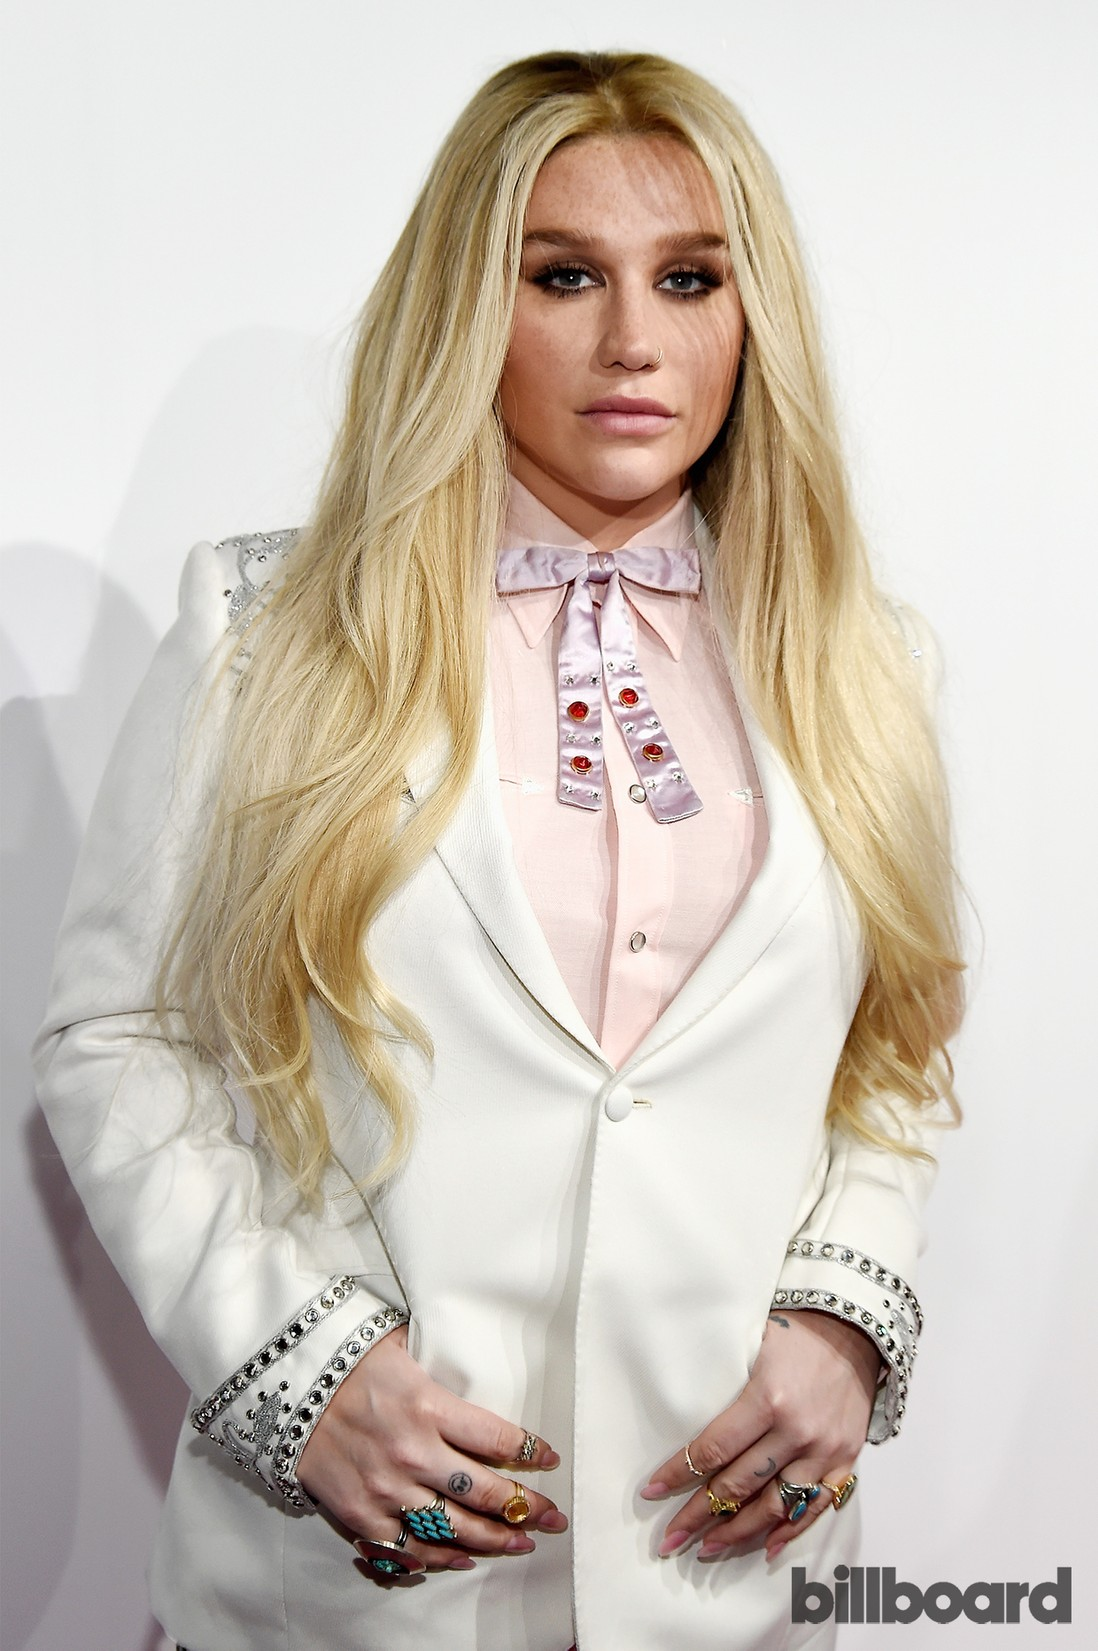 Kesha attends the Billboard Women in Music 2016 event on Dec. 9, 2016 in New York City.